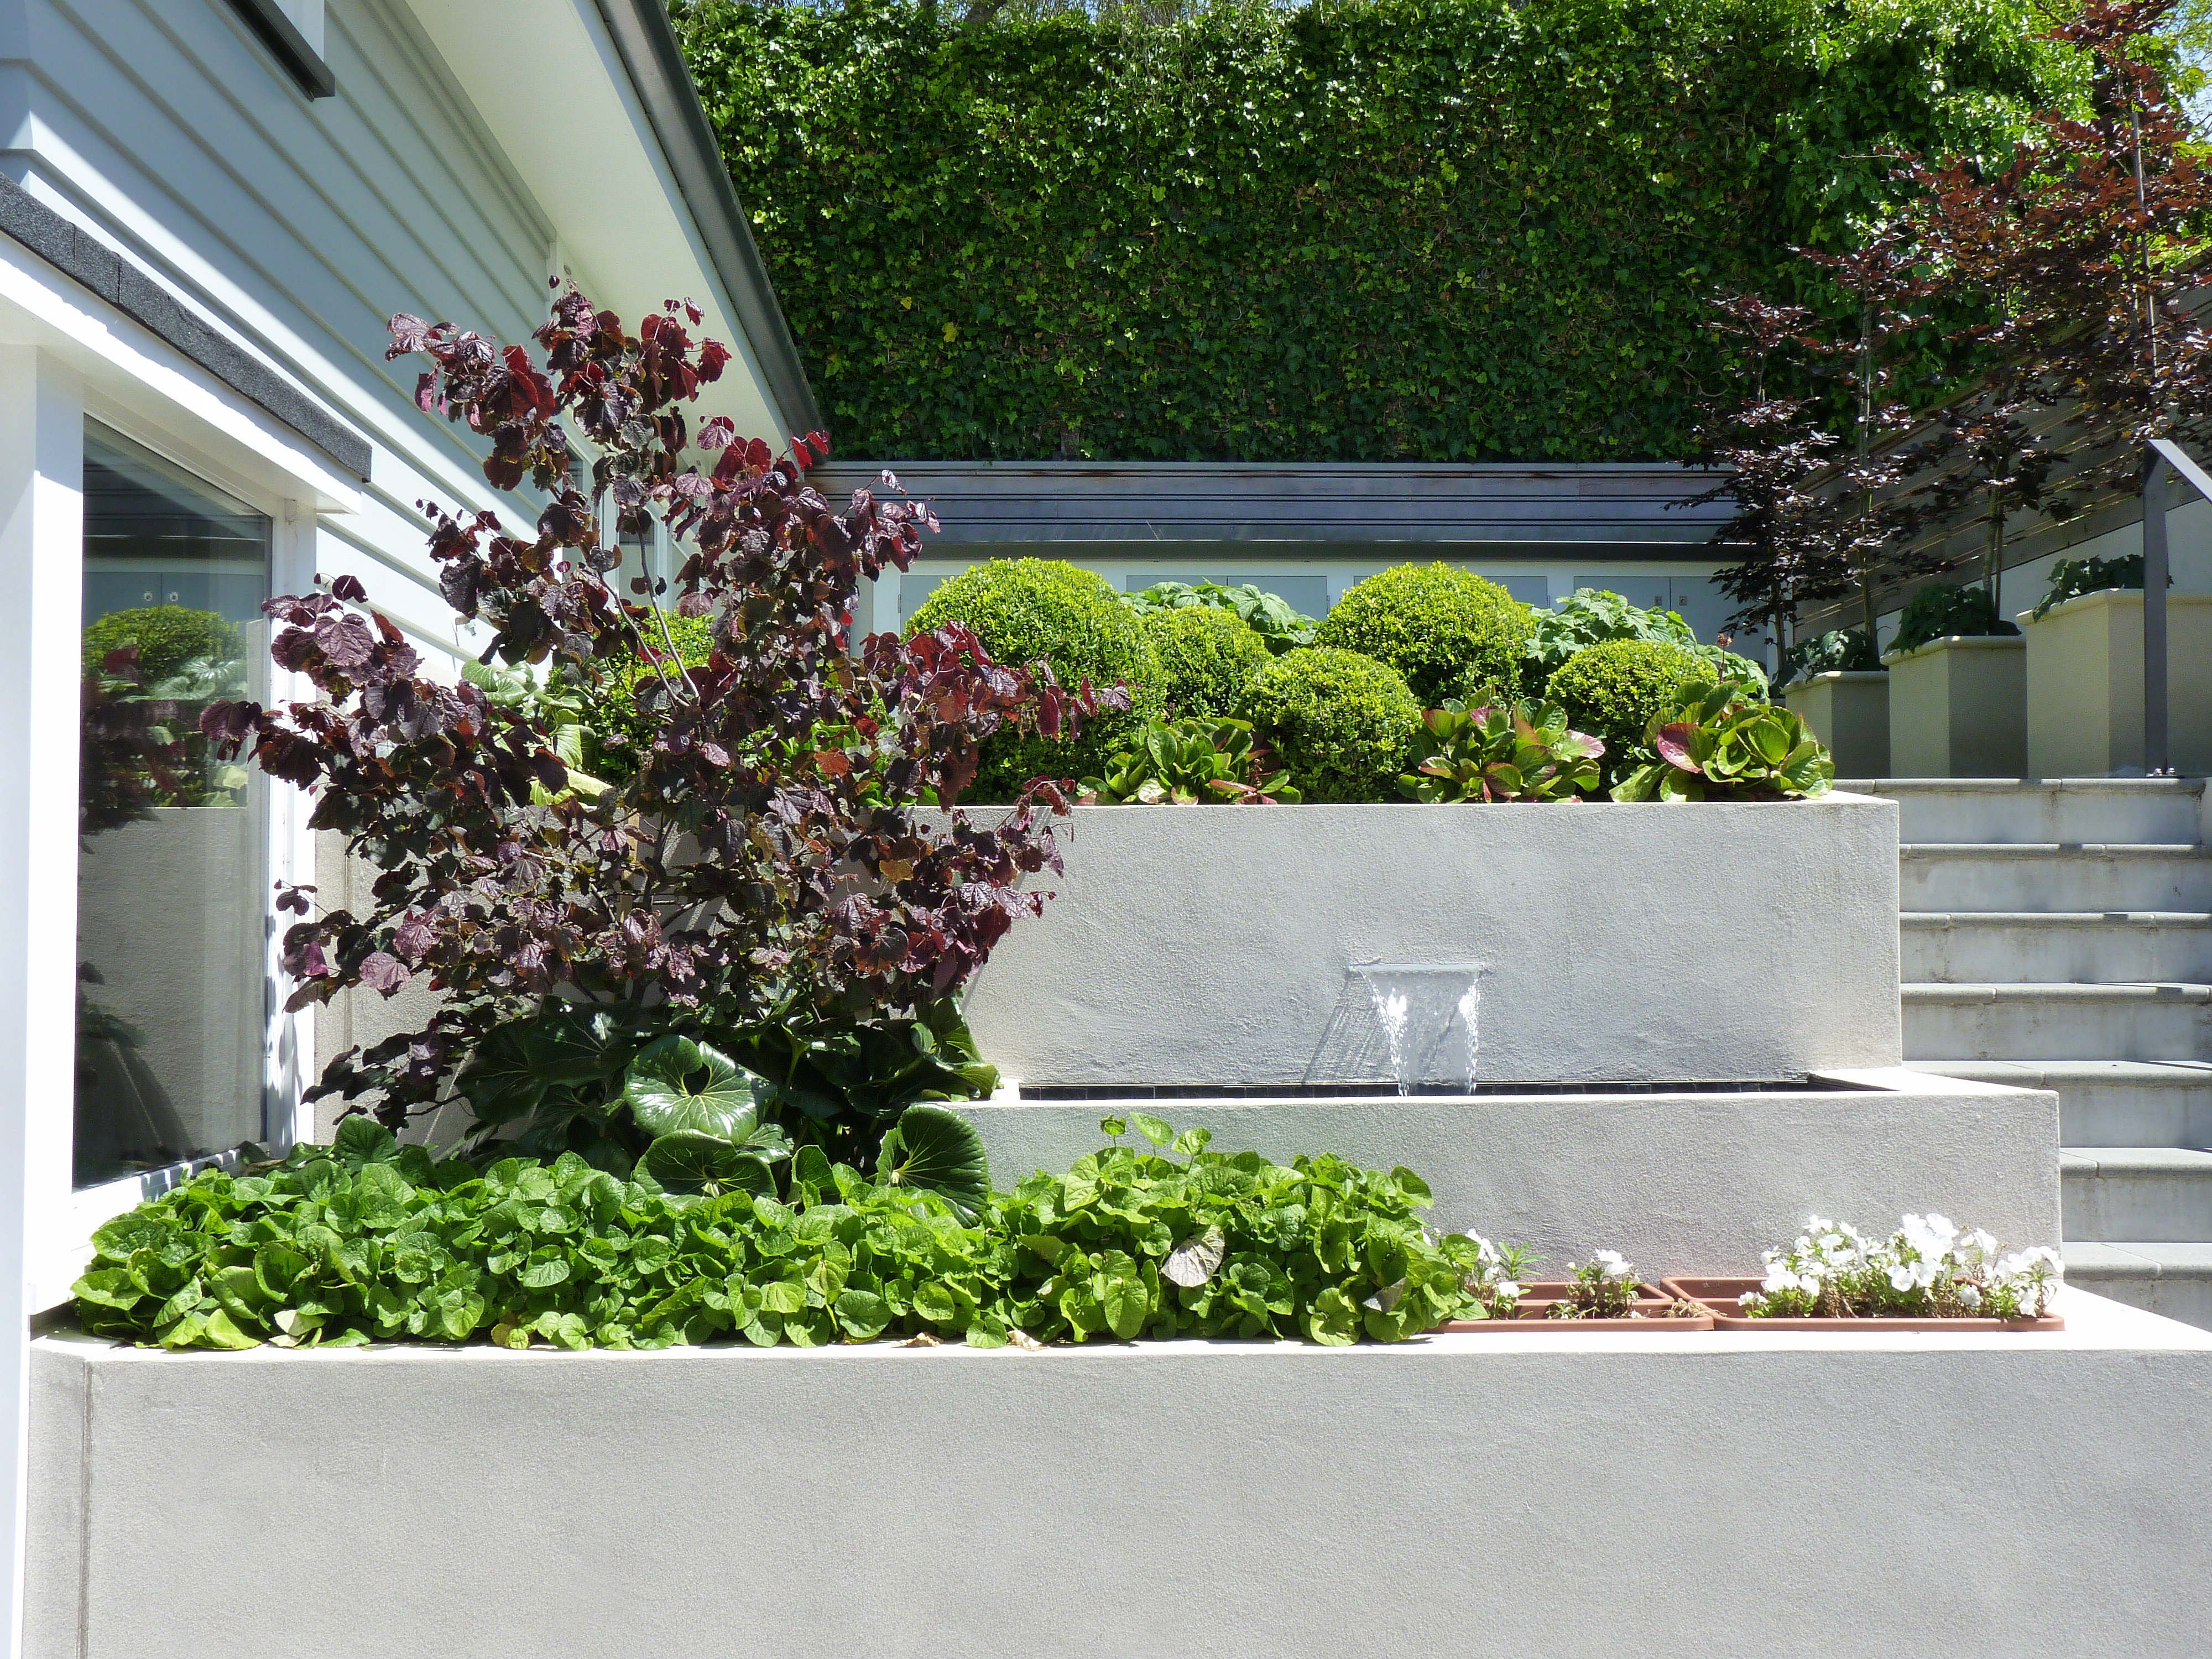 Hedge garden design topiary plants for sale for Small garden trees for sale